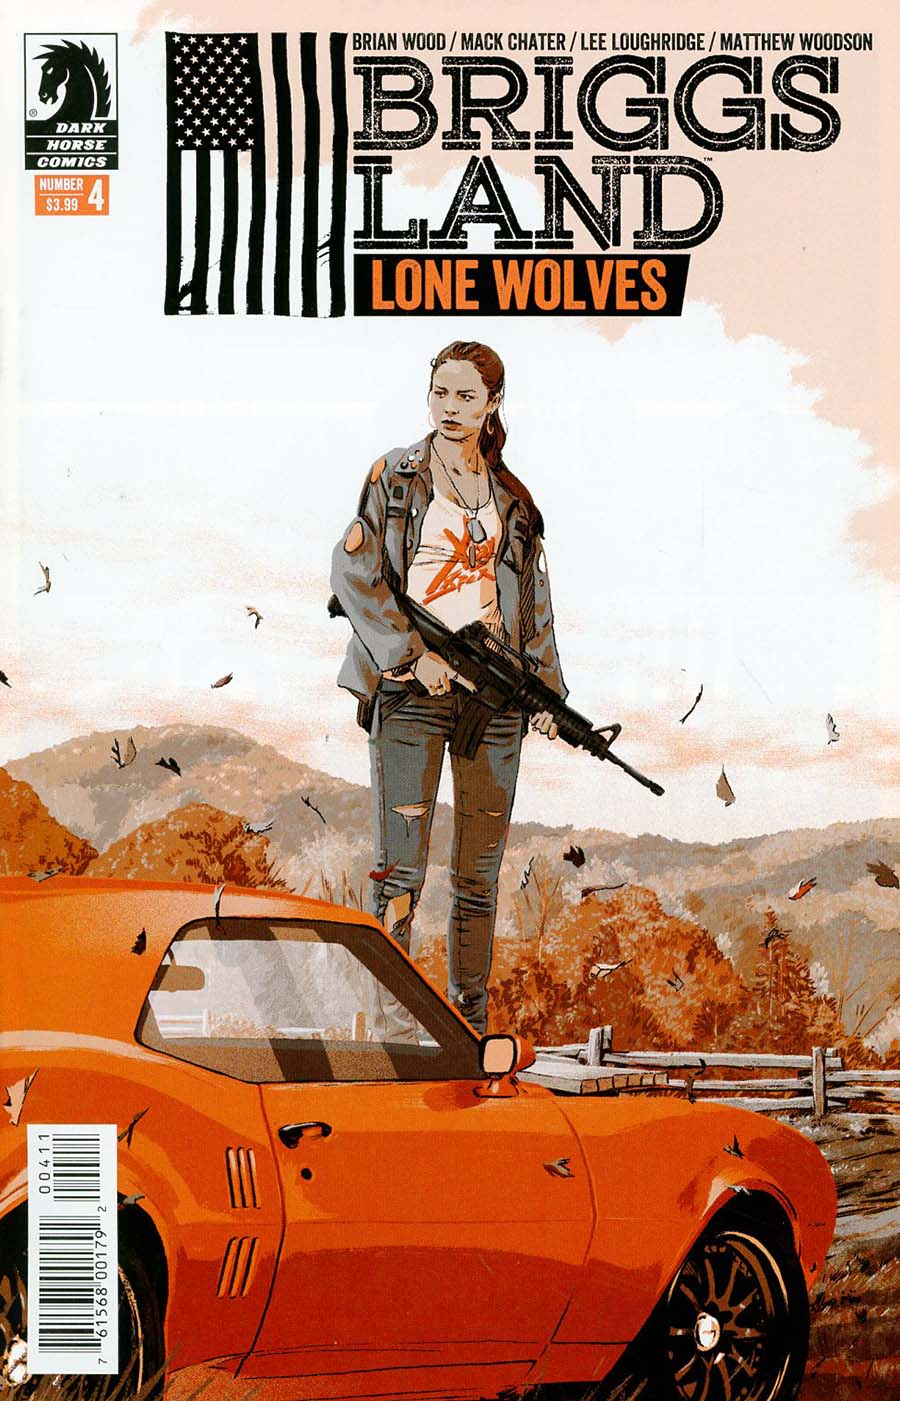 Briggs Land Lone Wolves #4 Cover A Regular Matthew Woodson Cover